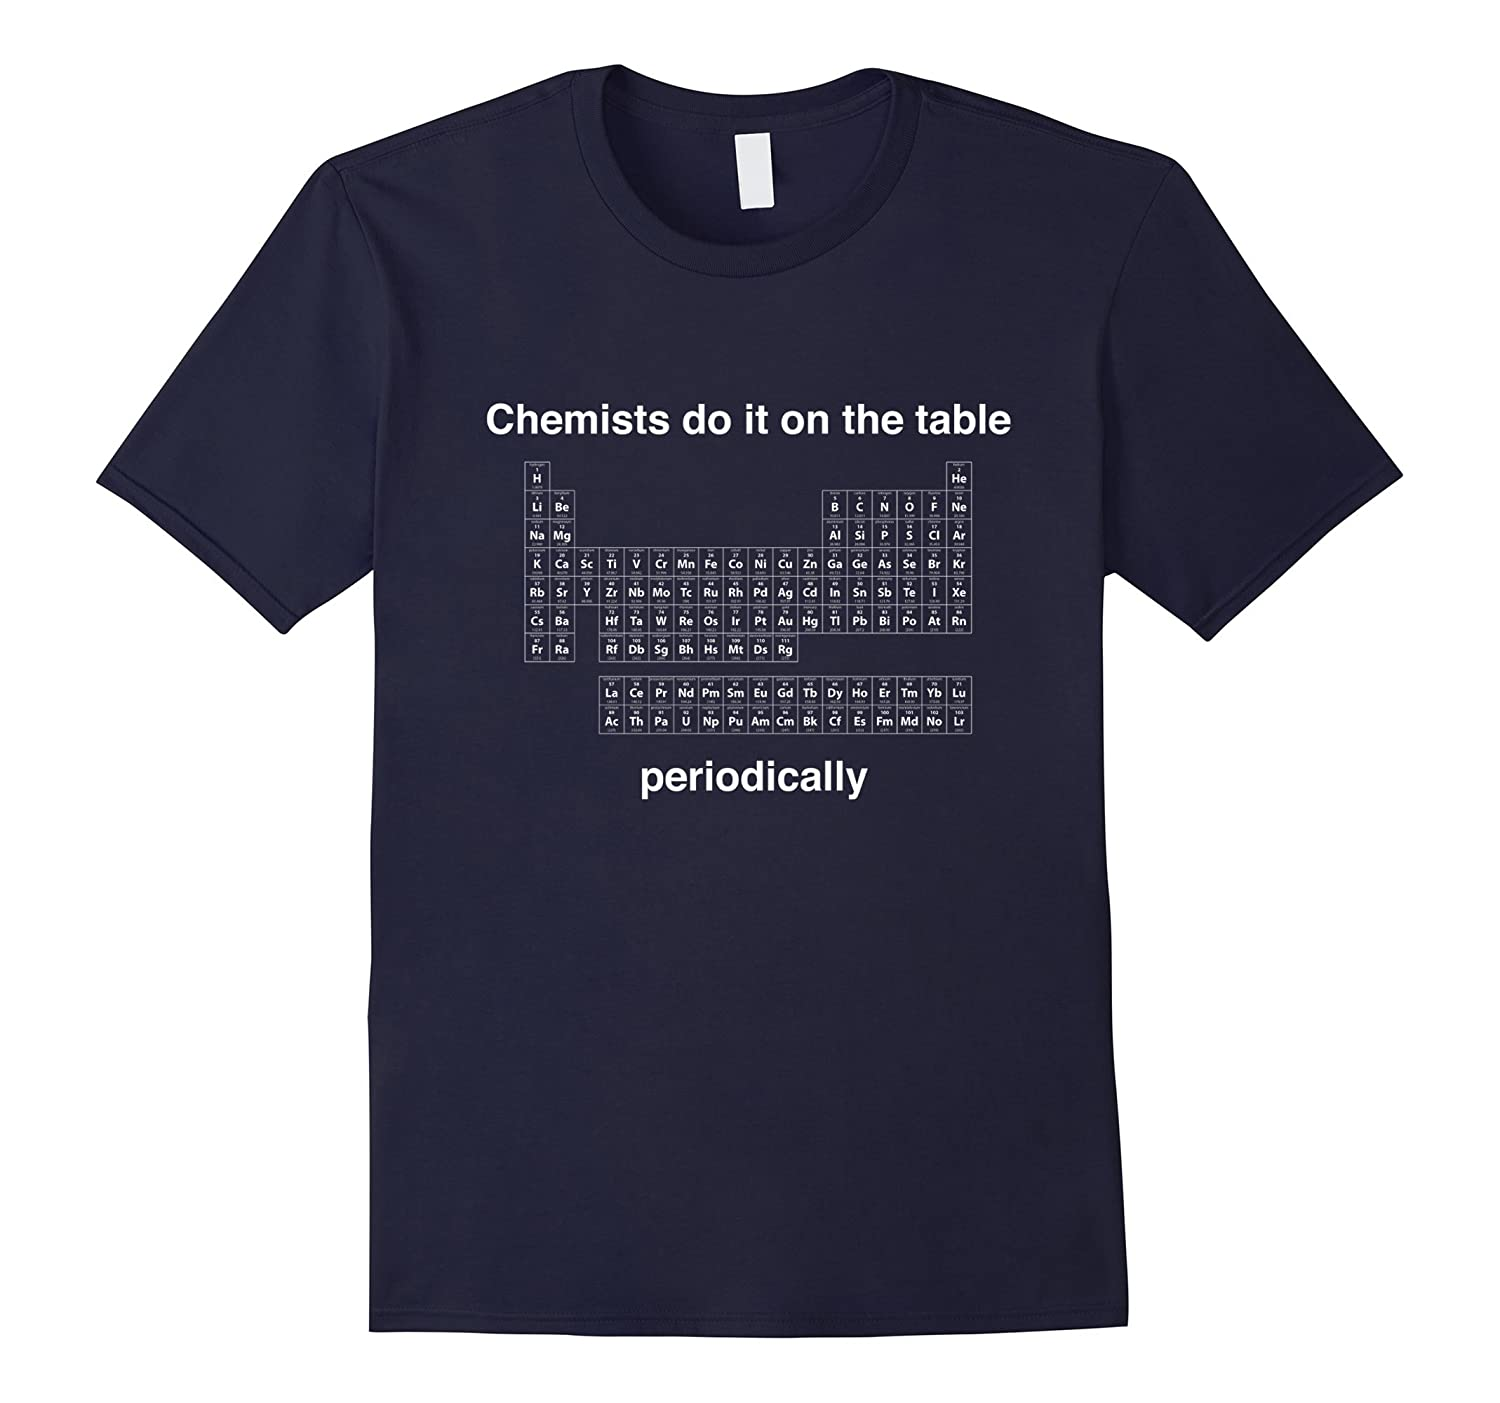 Chemists do it on the table periodically t-shirt-TD